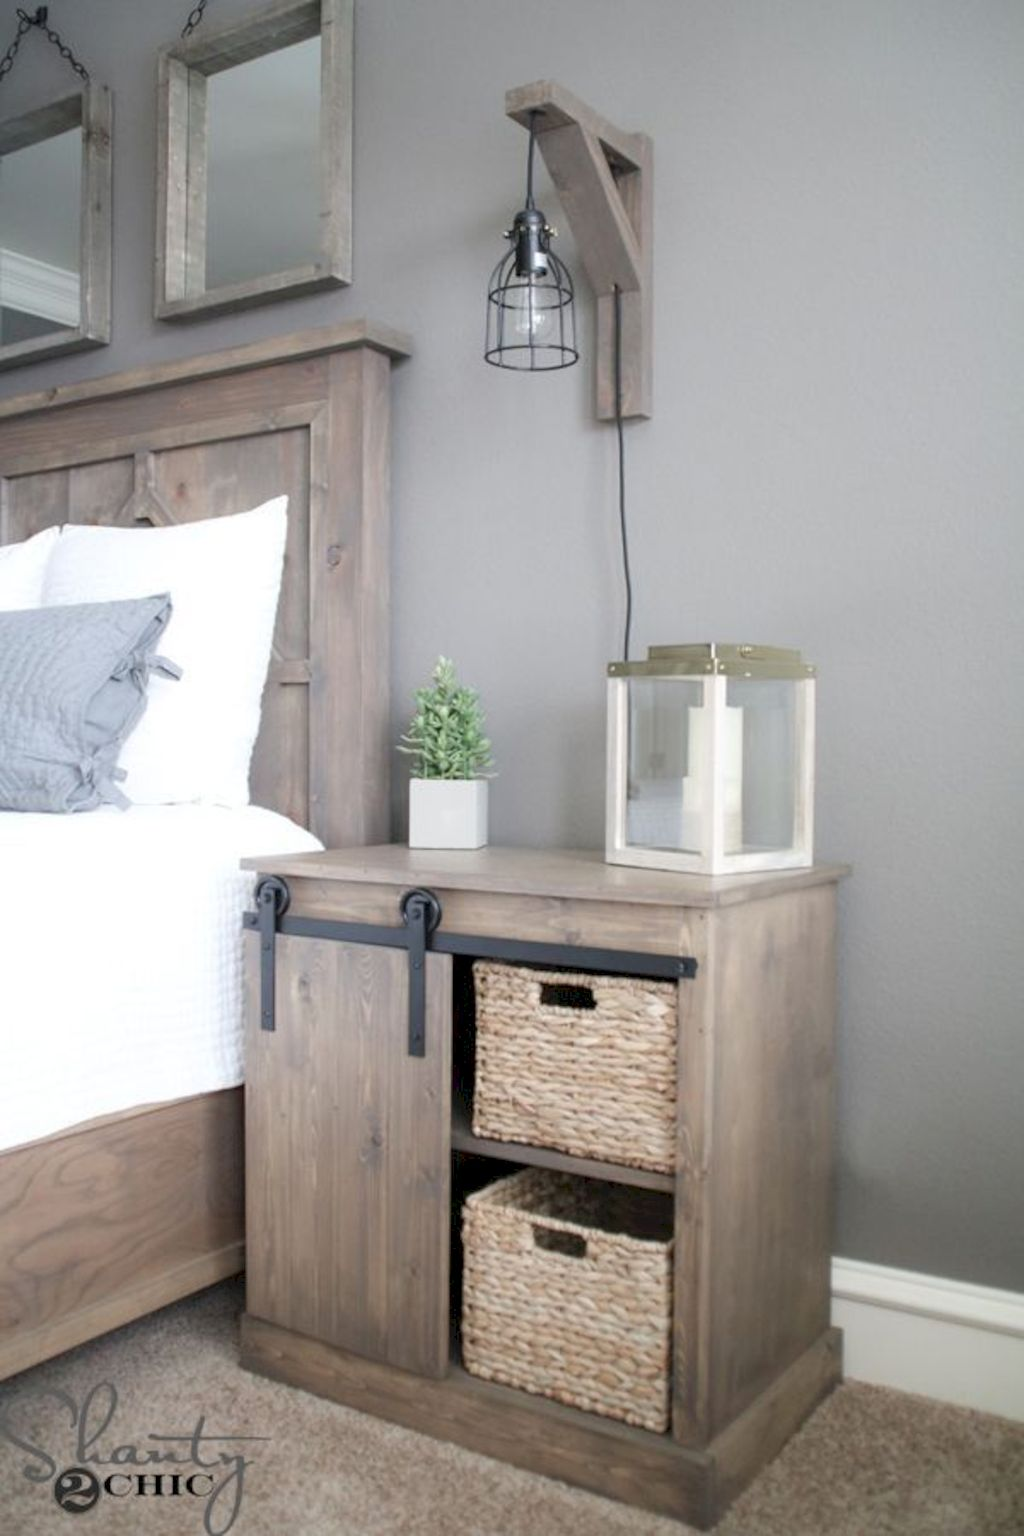 Barn style sliding doors applied as bedroom doors showing a rustic accent in the modern country homes Image 31